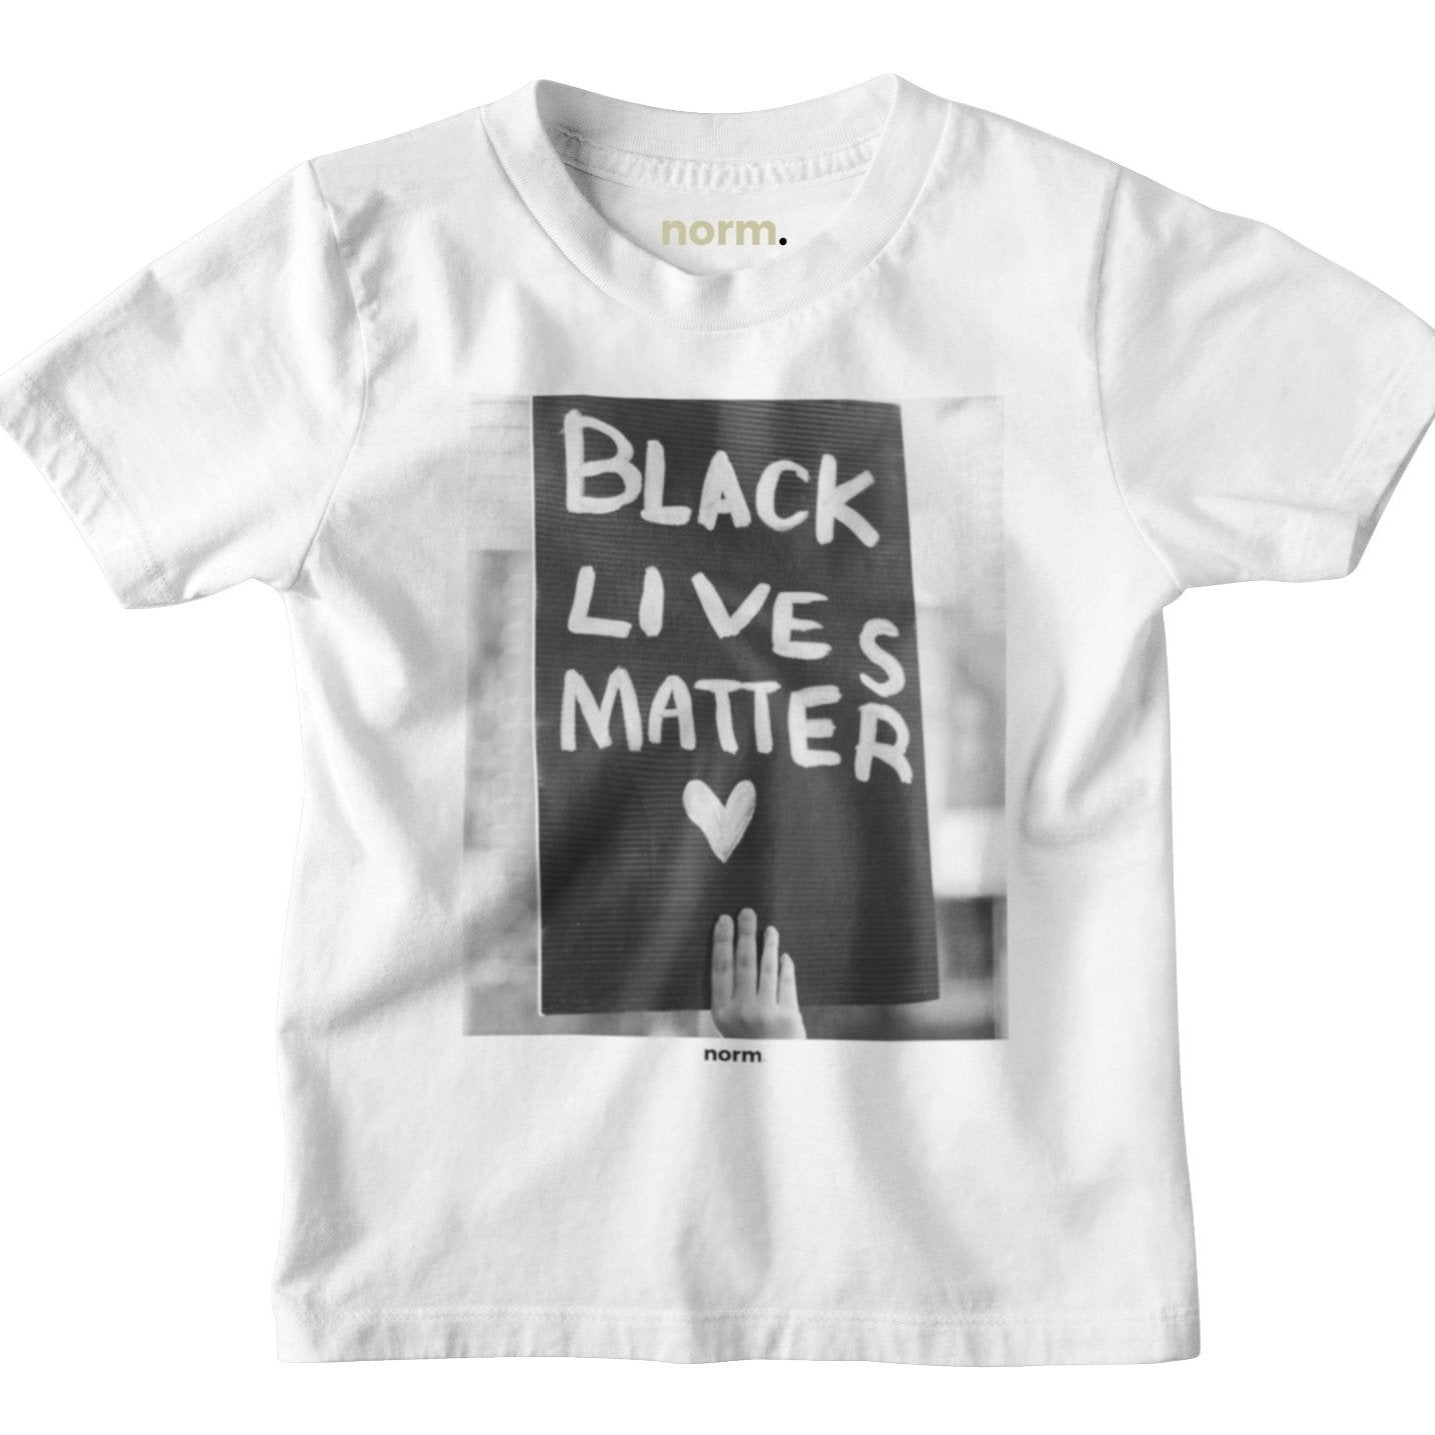 Black Lives Matter toddler tee. norm. White 2T